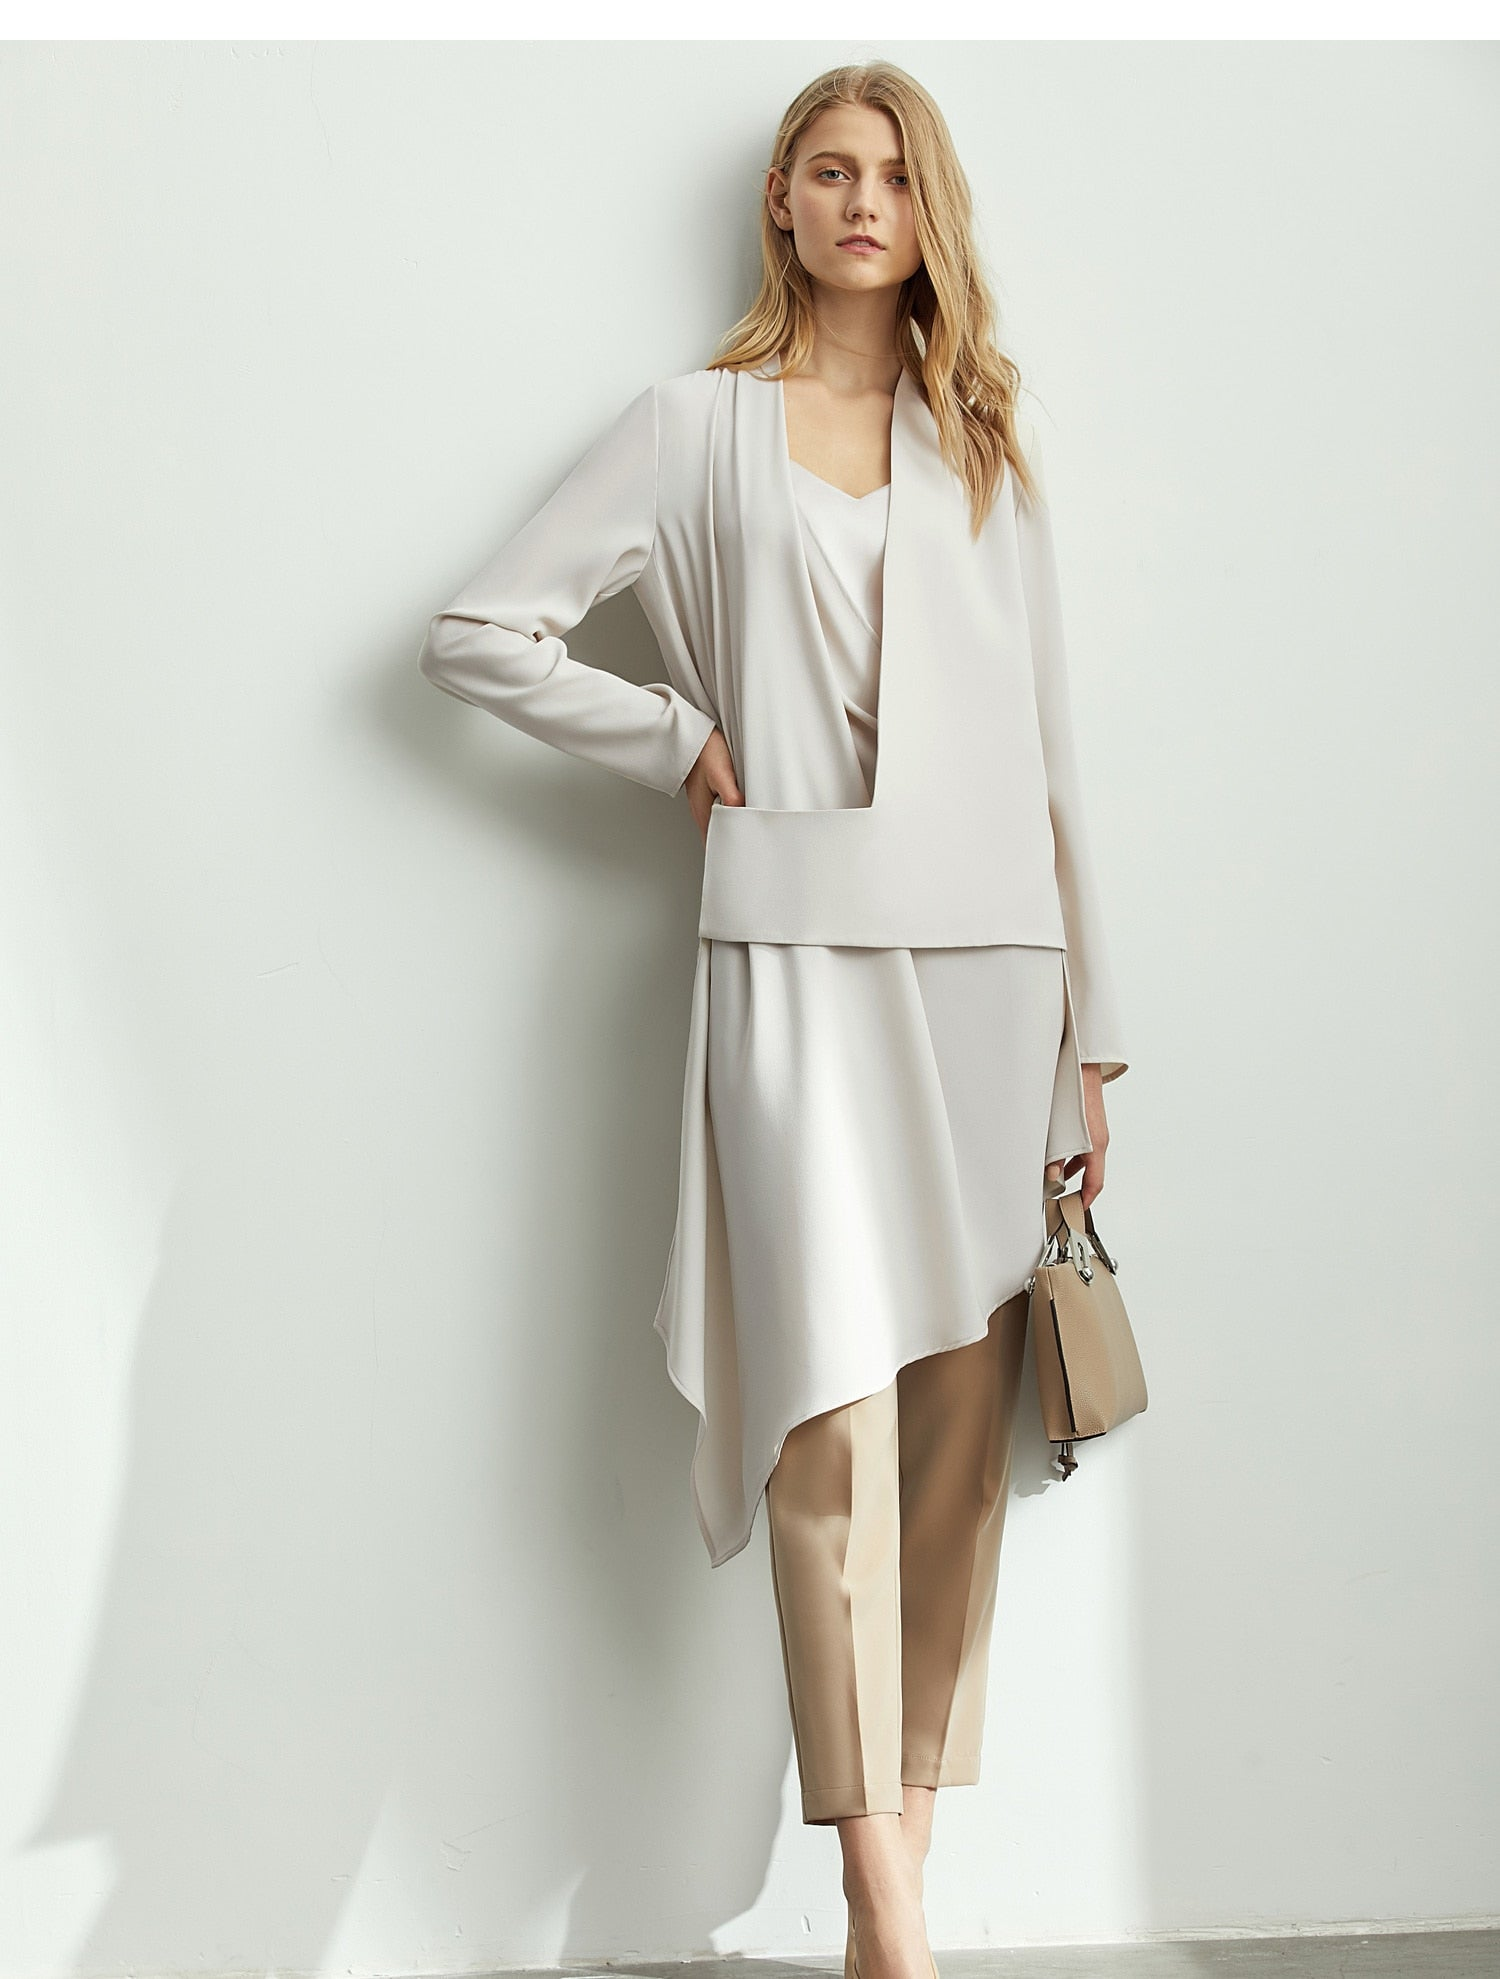 New French Style Asymmetric minimalist jacket - Jeybeauty